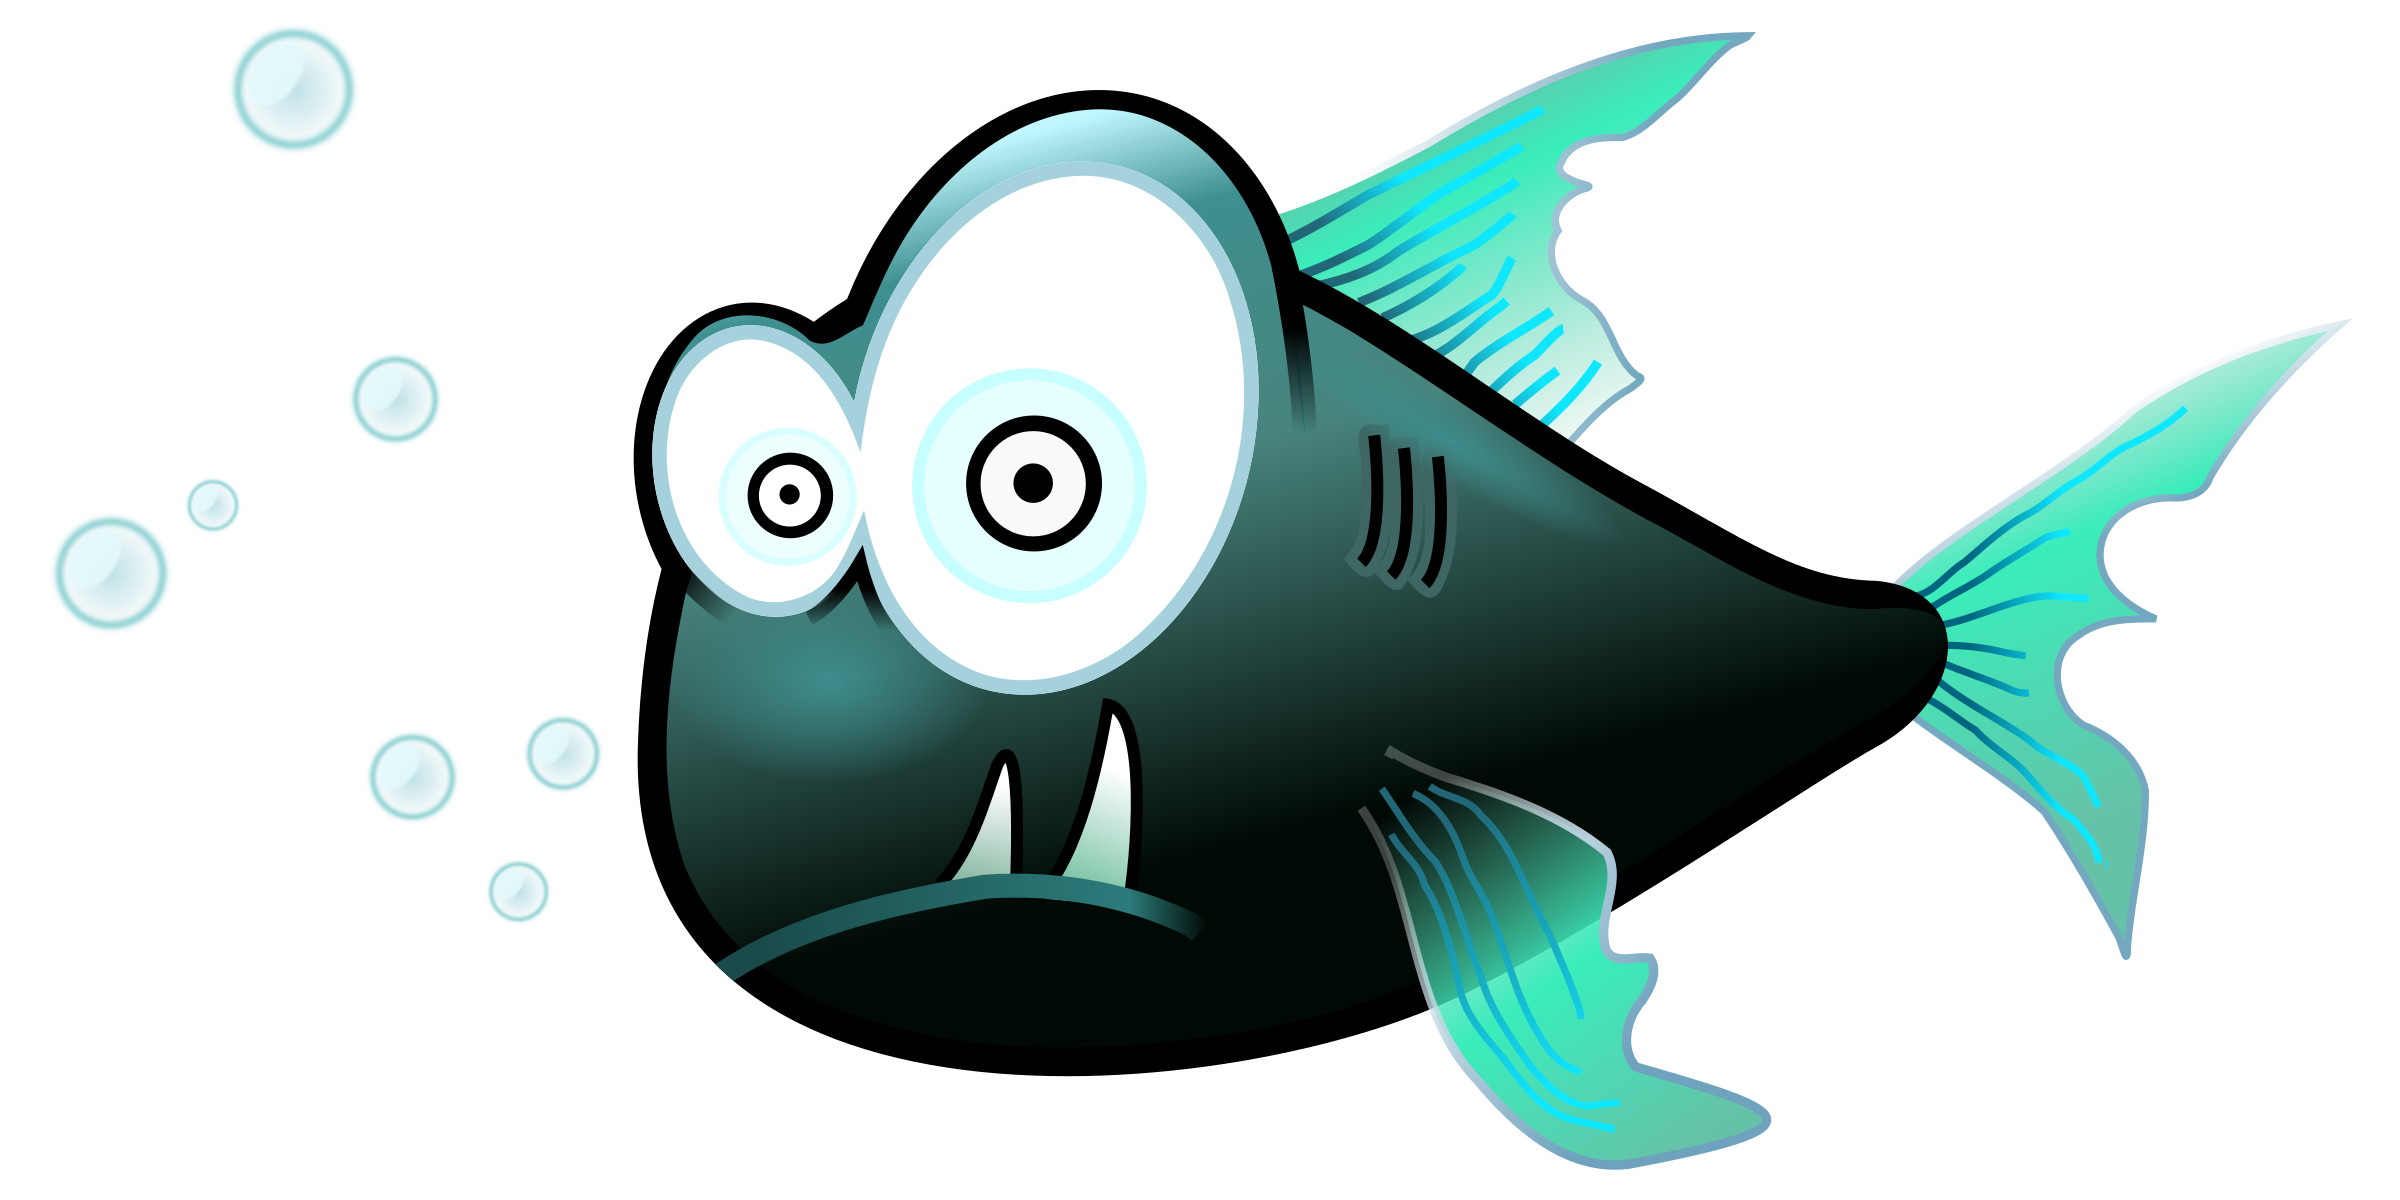 Piranha Clipart Hungry Free collection | Download and share Piranha ... image freeuse download